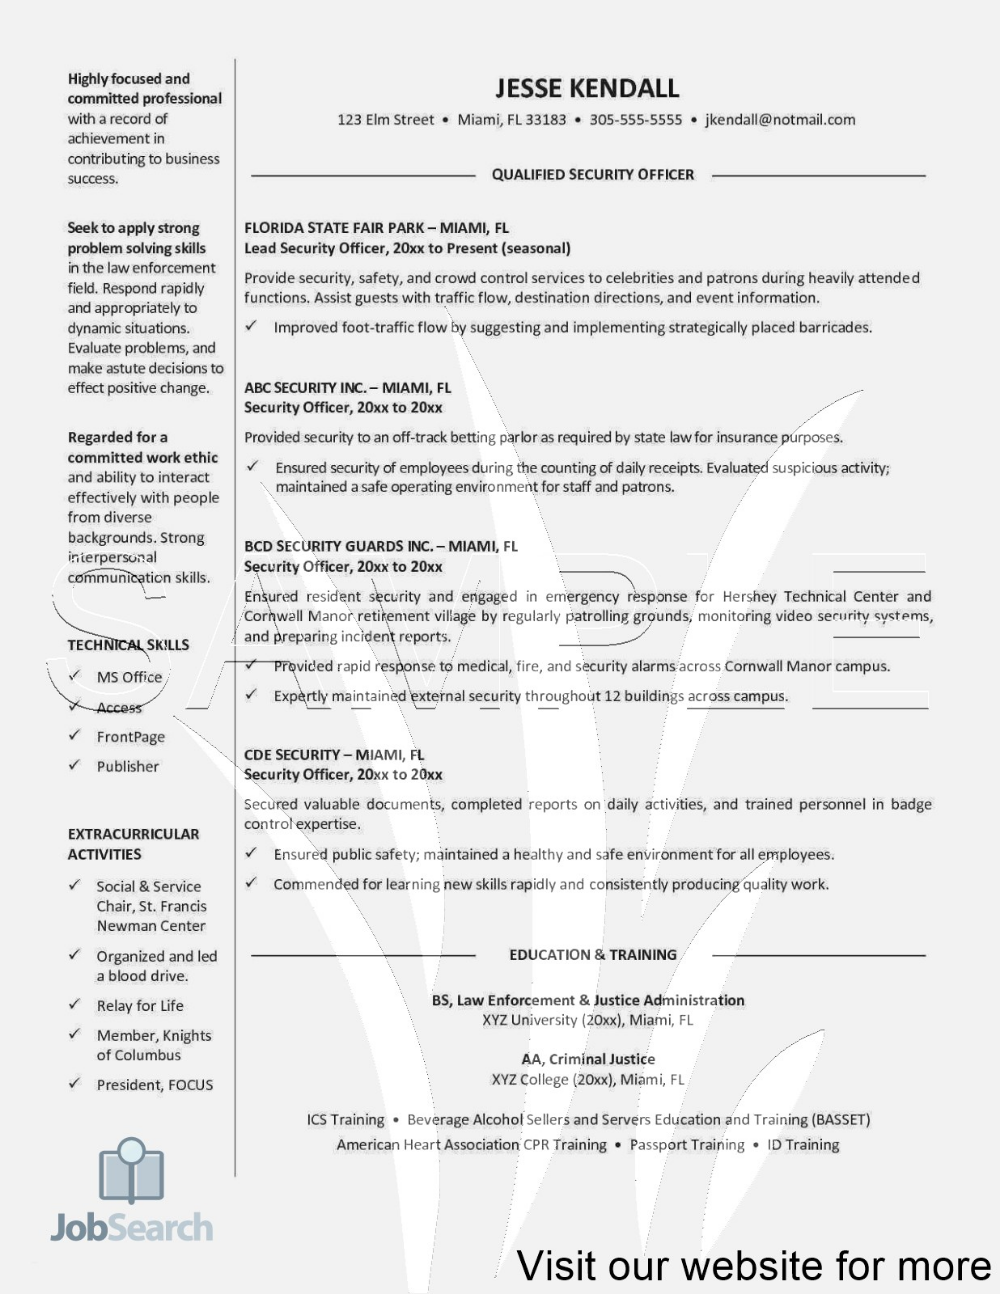 Security Guard Resume Example Free Security Guard Resume Example Security Guard Resume In 2020 Resume Examples Resume Design Professional Resume Objective Examples